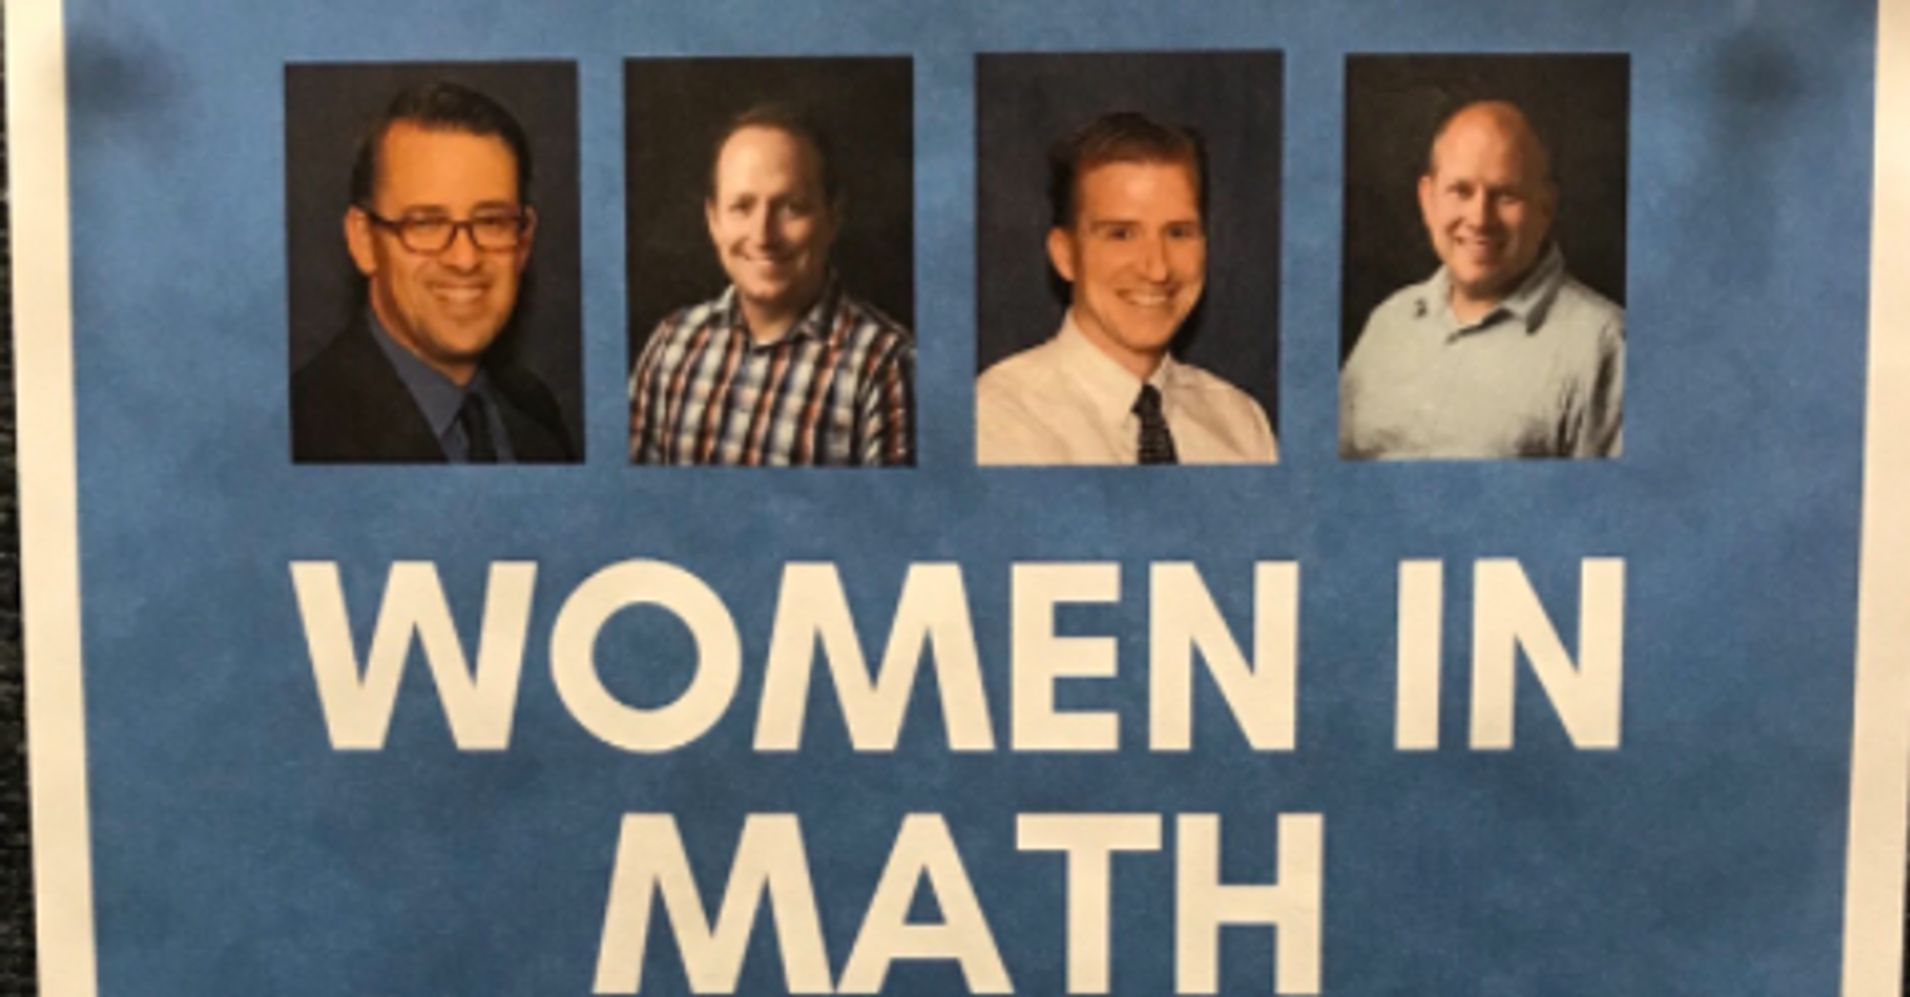 College's 'Women In Math' Panel Features Only Male Speakers